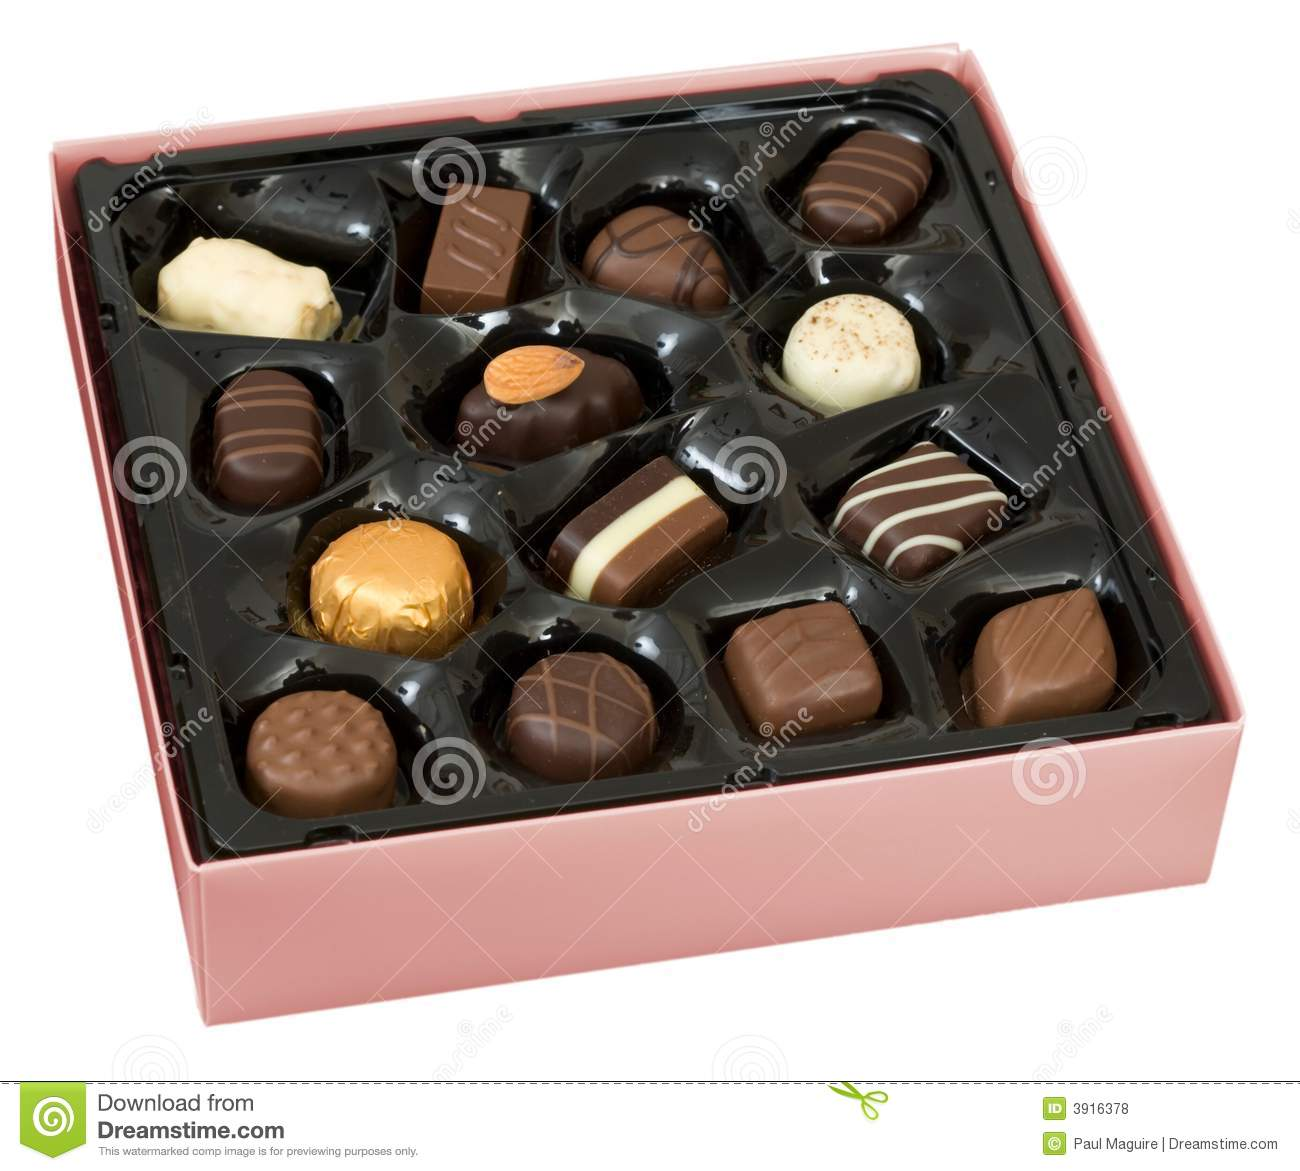 Box Of Chocolates Royalty Free Stock Photos - Image: 3916378